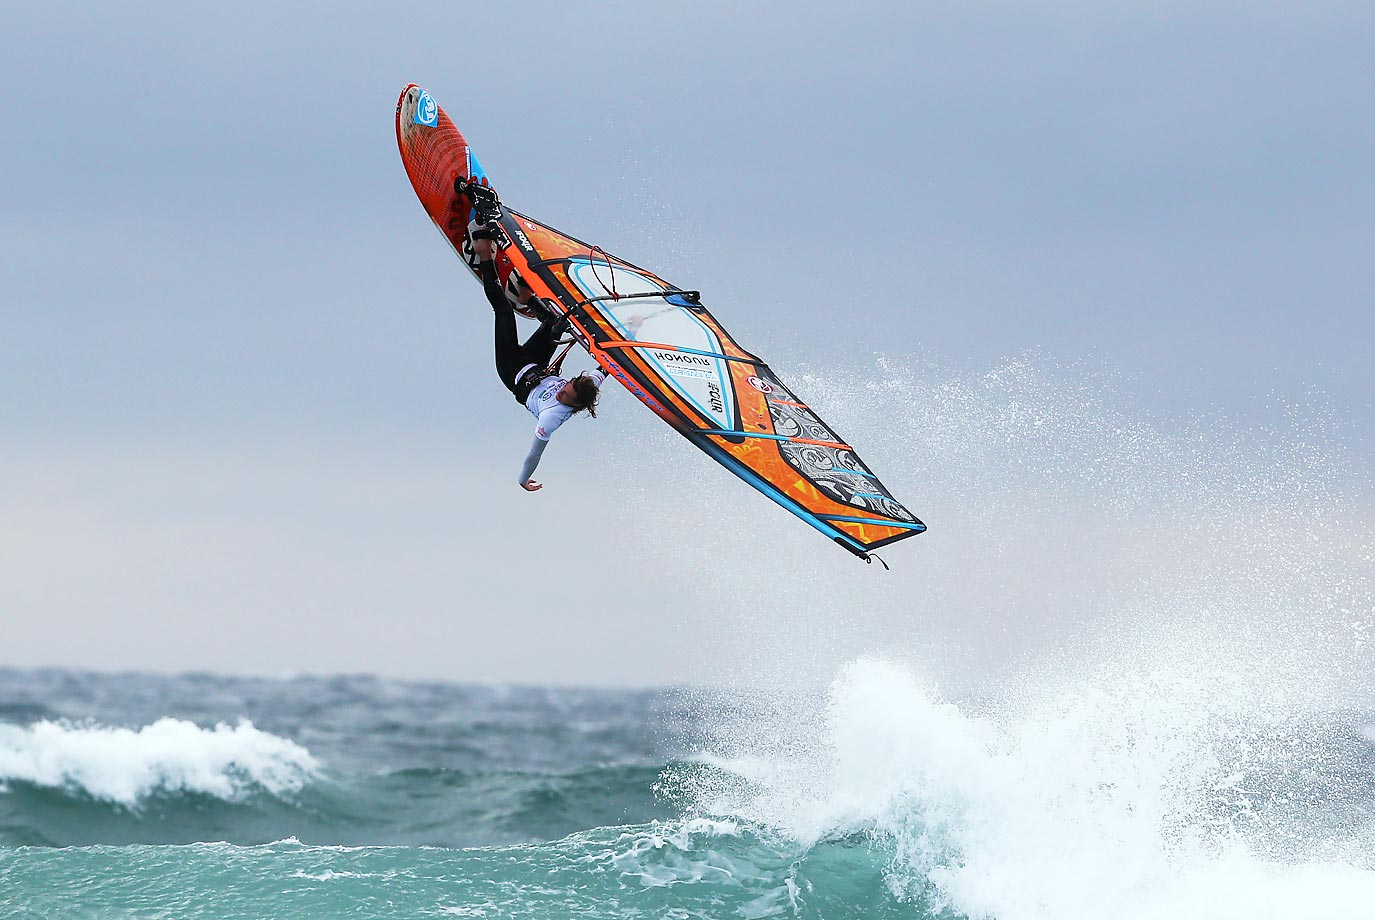 Aleksy Gayda competes during the 28th Tiree Wave Classic at Balephuill Bay in Tiree, Scotland.